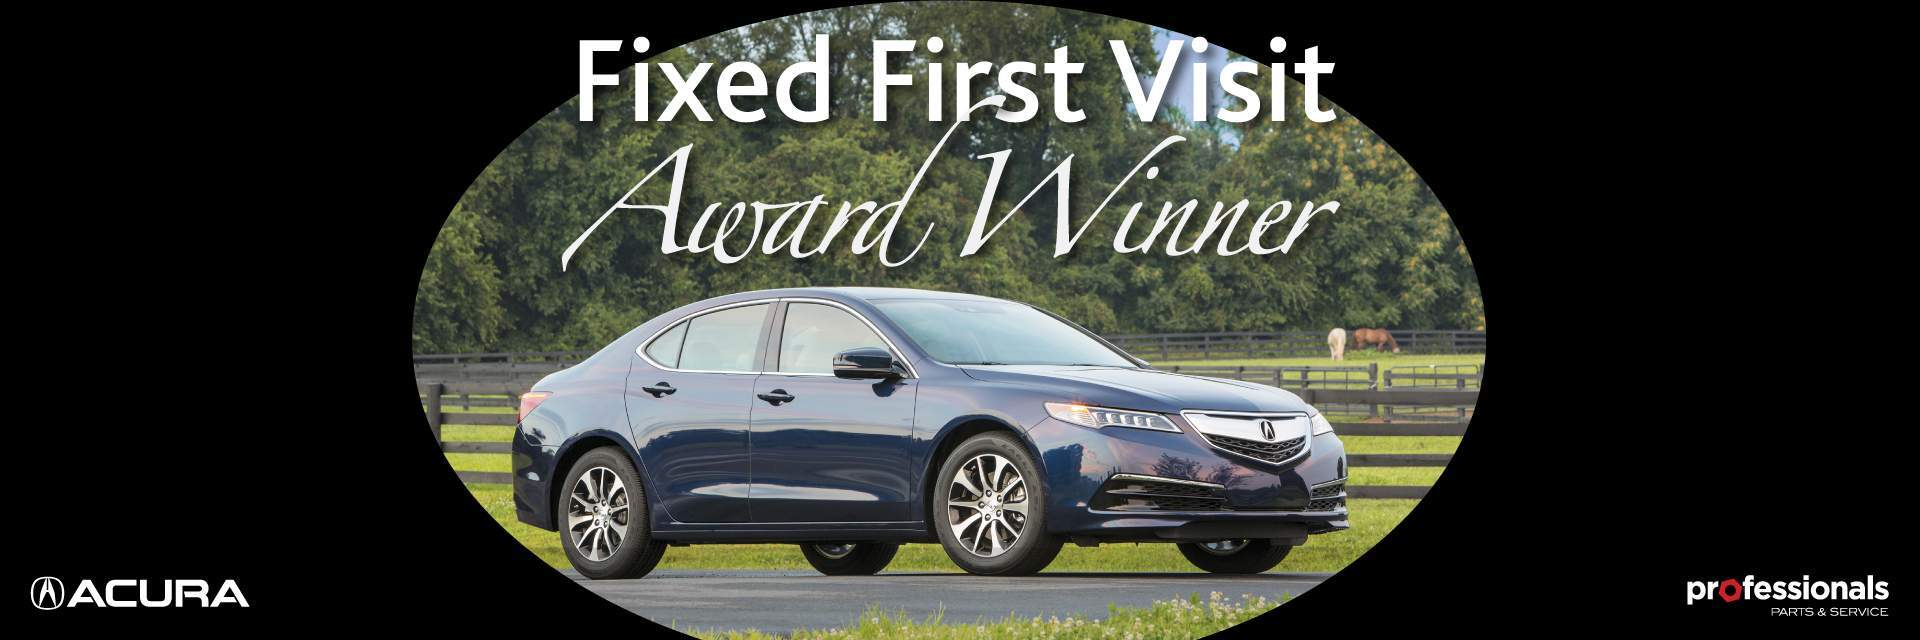 Acura Dealership Johnson City TN | Used Cars Bill Gatton Acura on